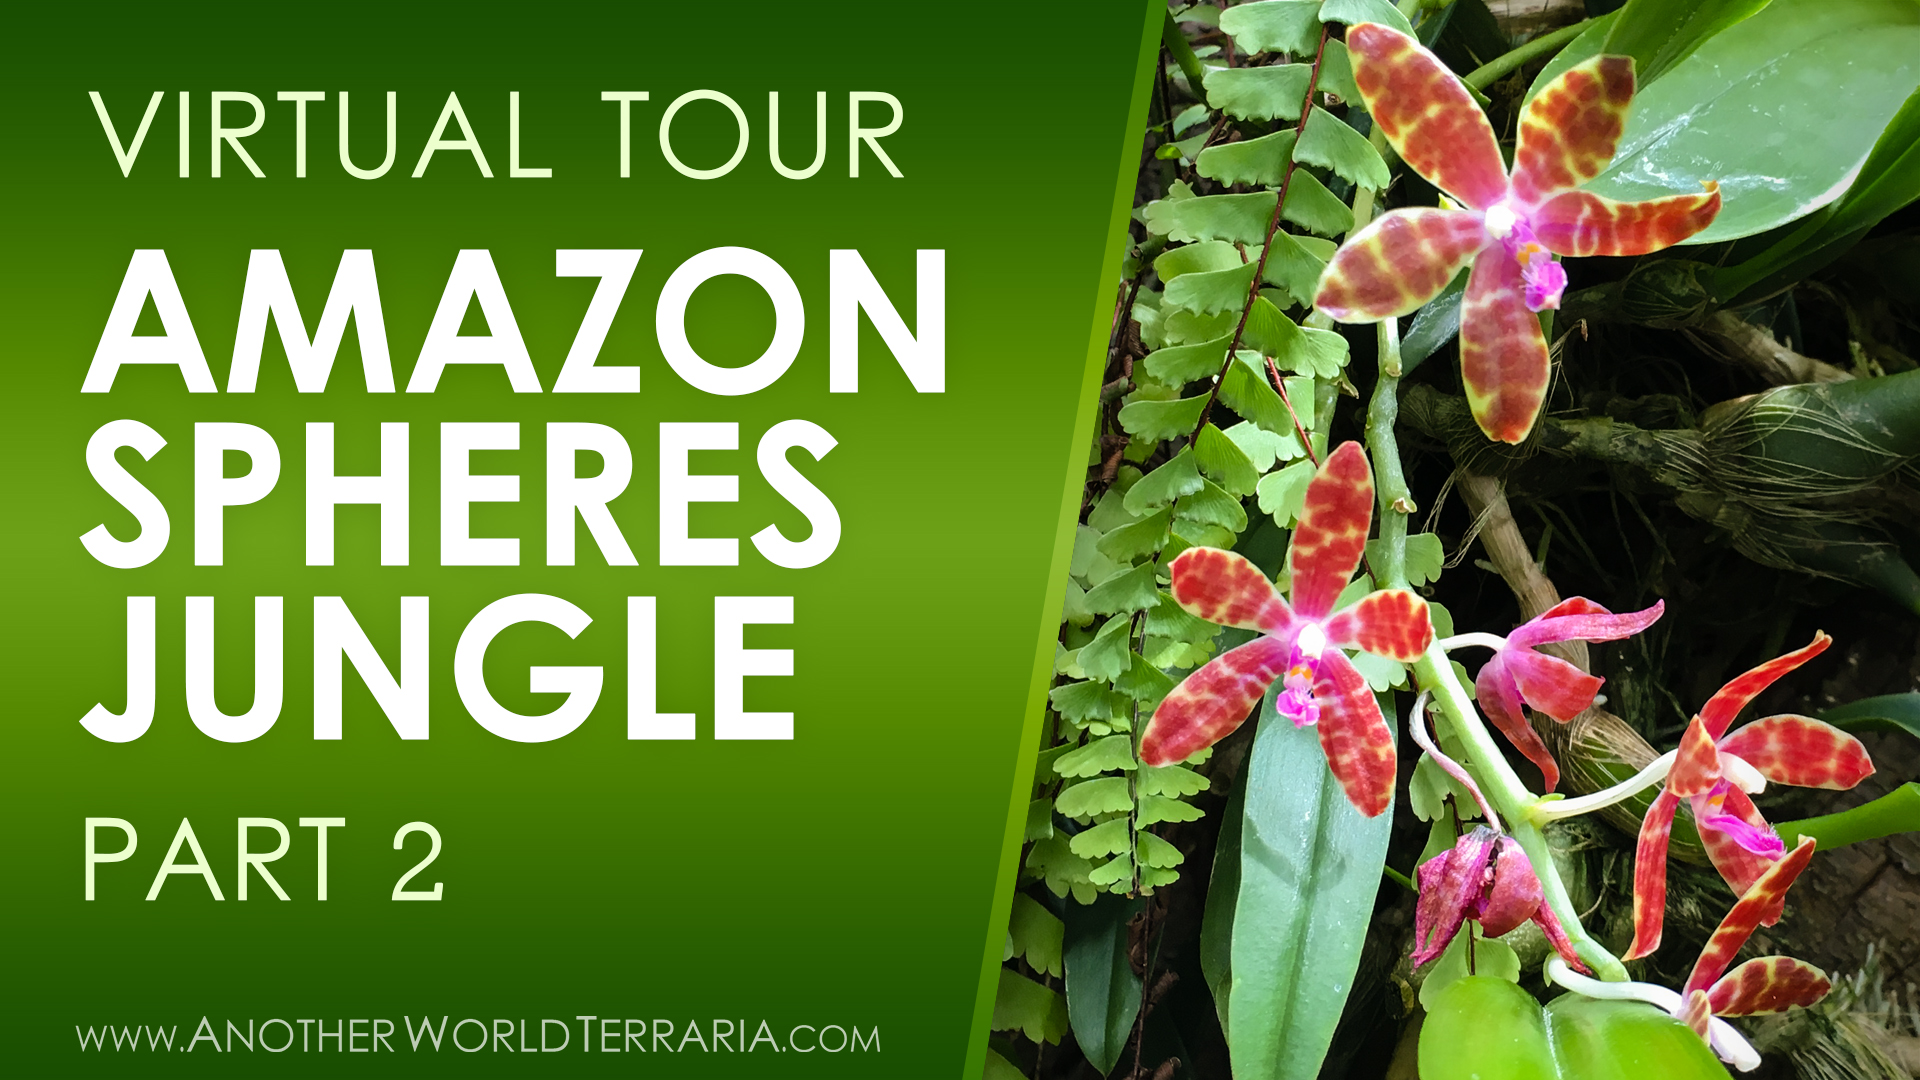 Amazon Spheres Jungle Tour Part 2